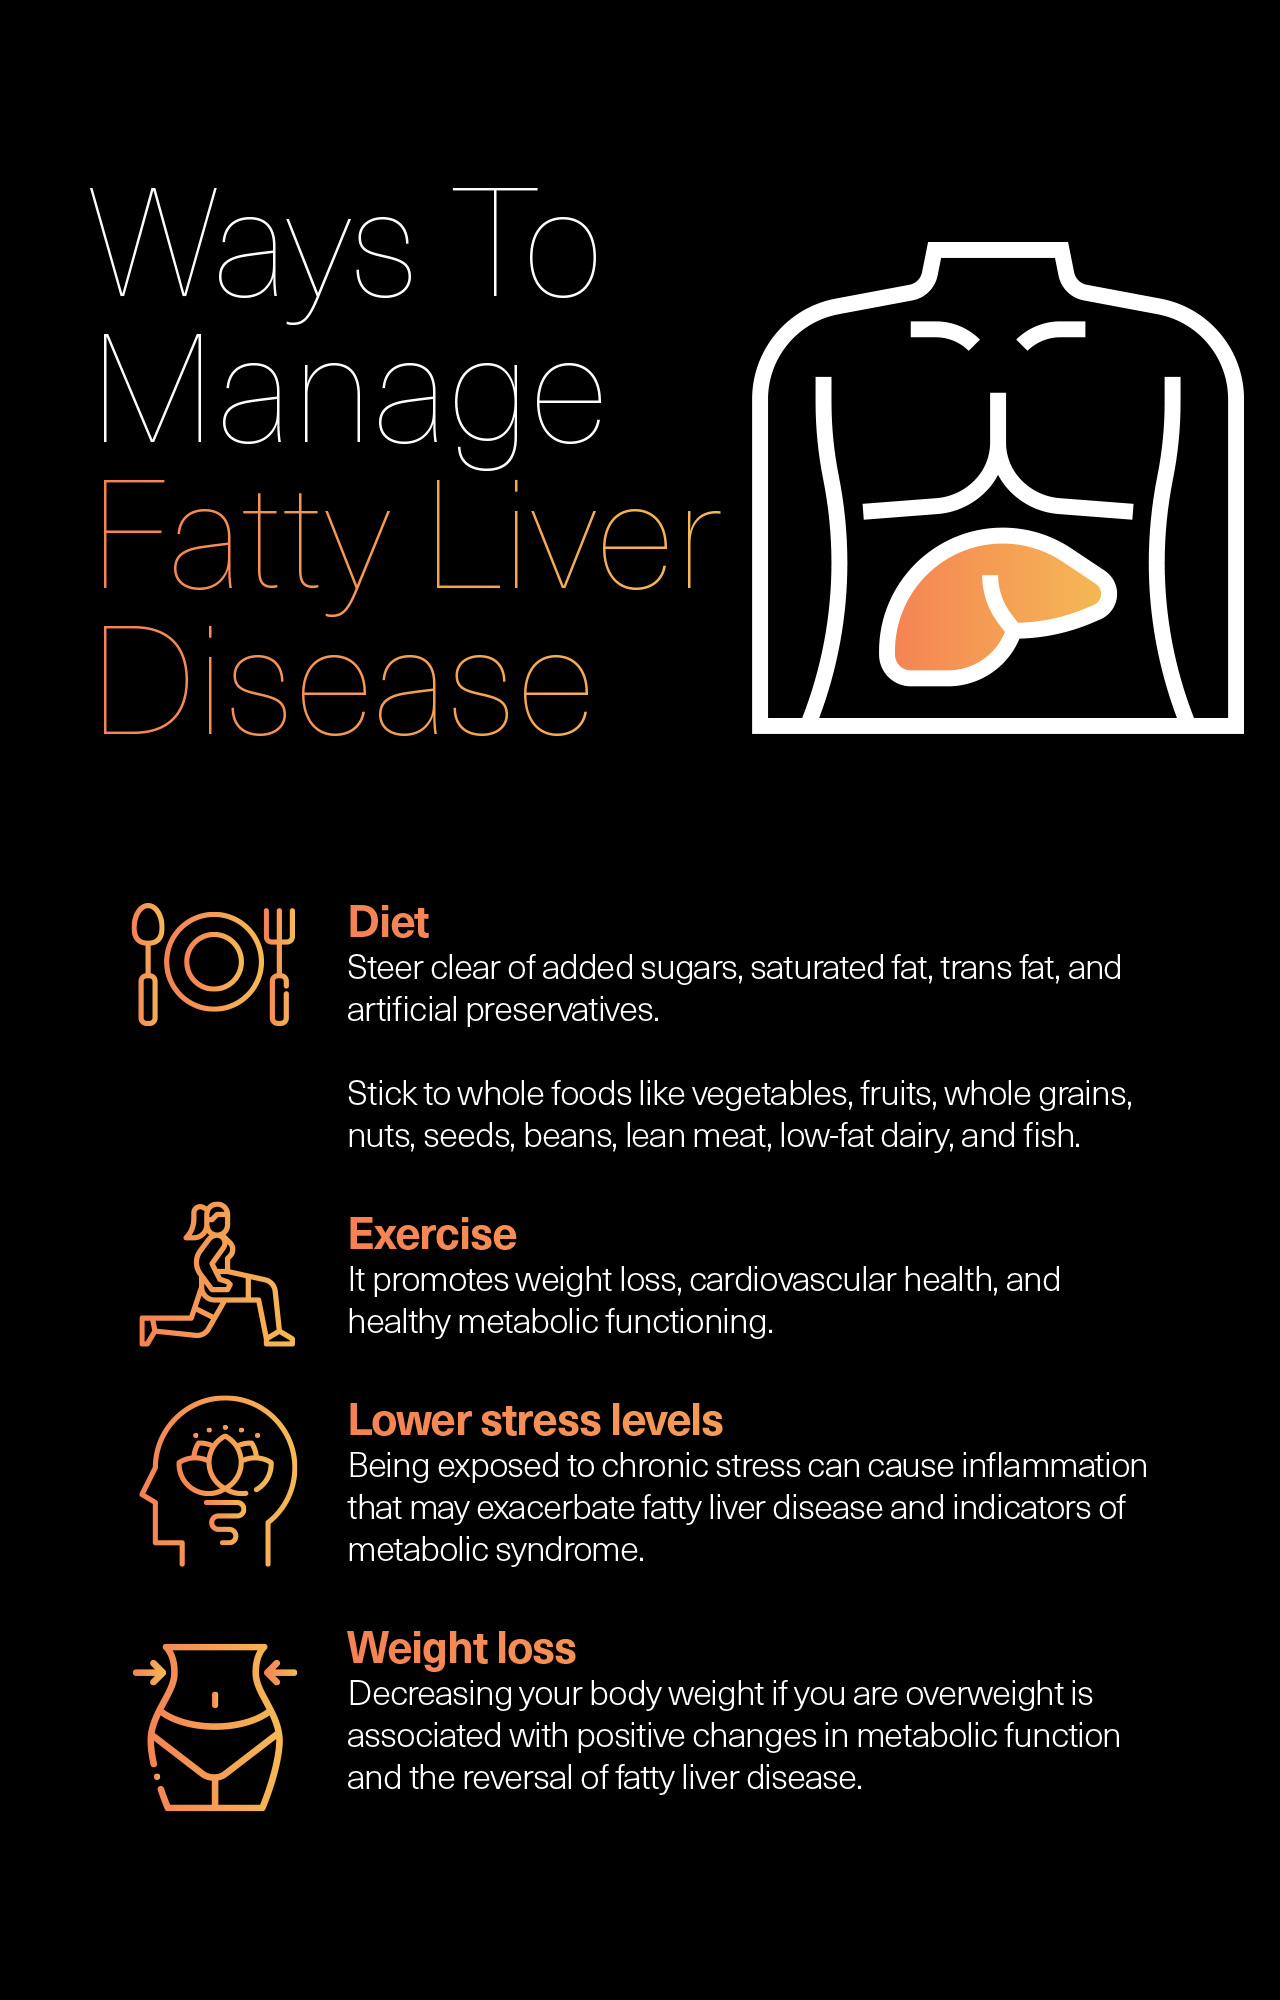 Ways To Manage Fatty Liver Disease